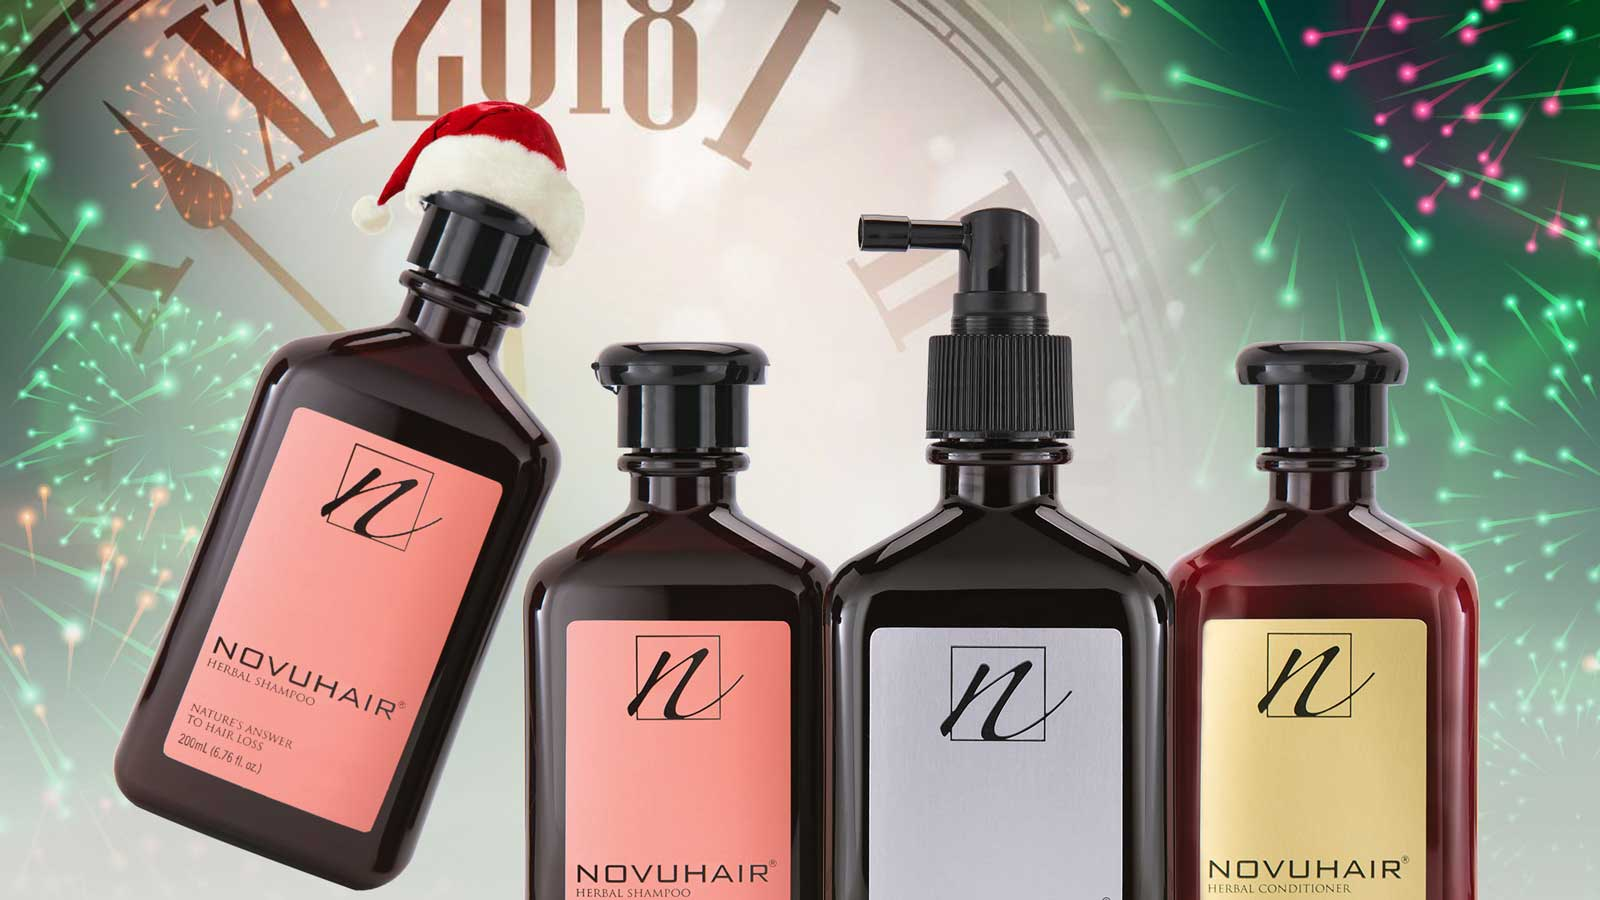 NOVUHAIR turns favor with Holiday bash promo